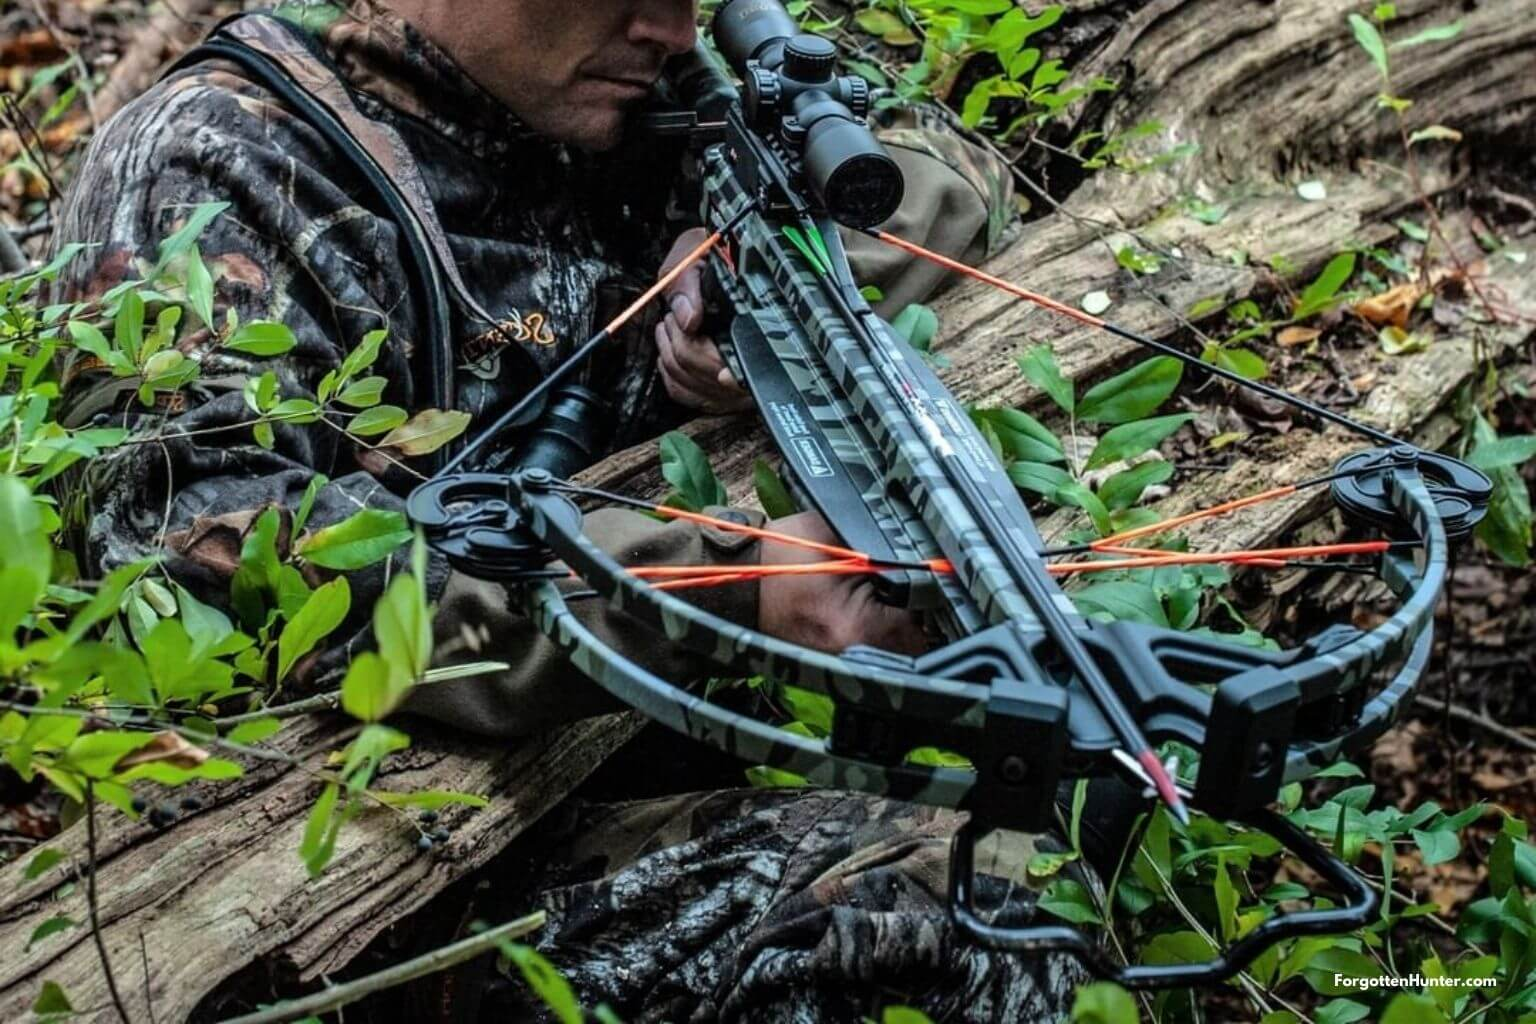 Wicked Ridge Blackhawk 360 Review - Best American Made Budget Crossbow of 2021?